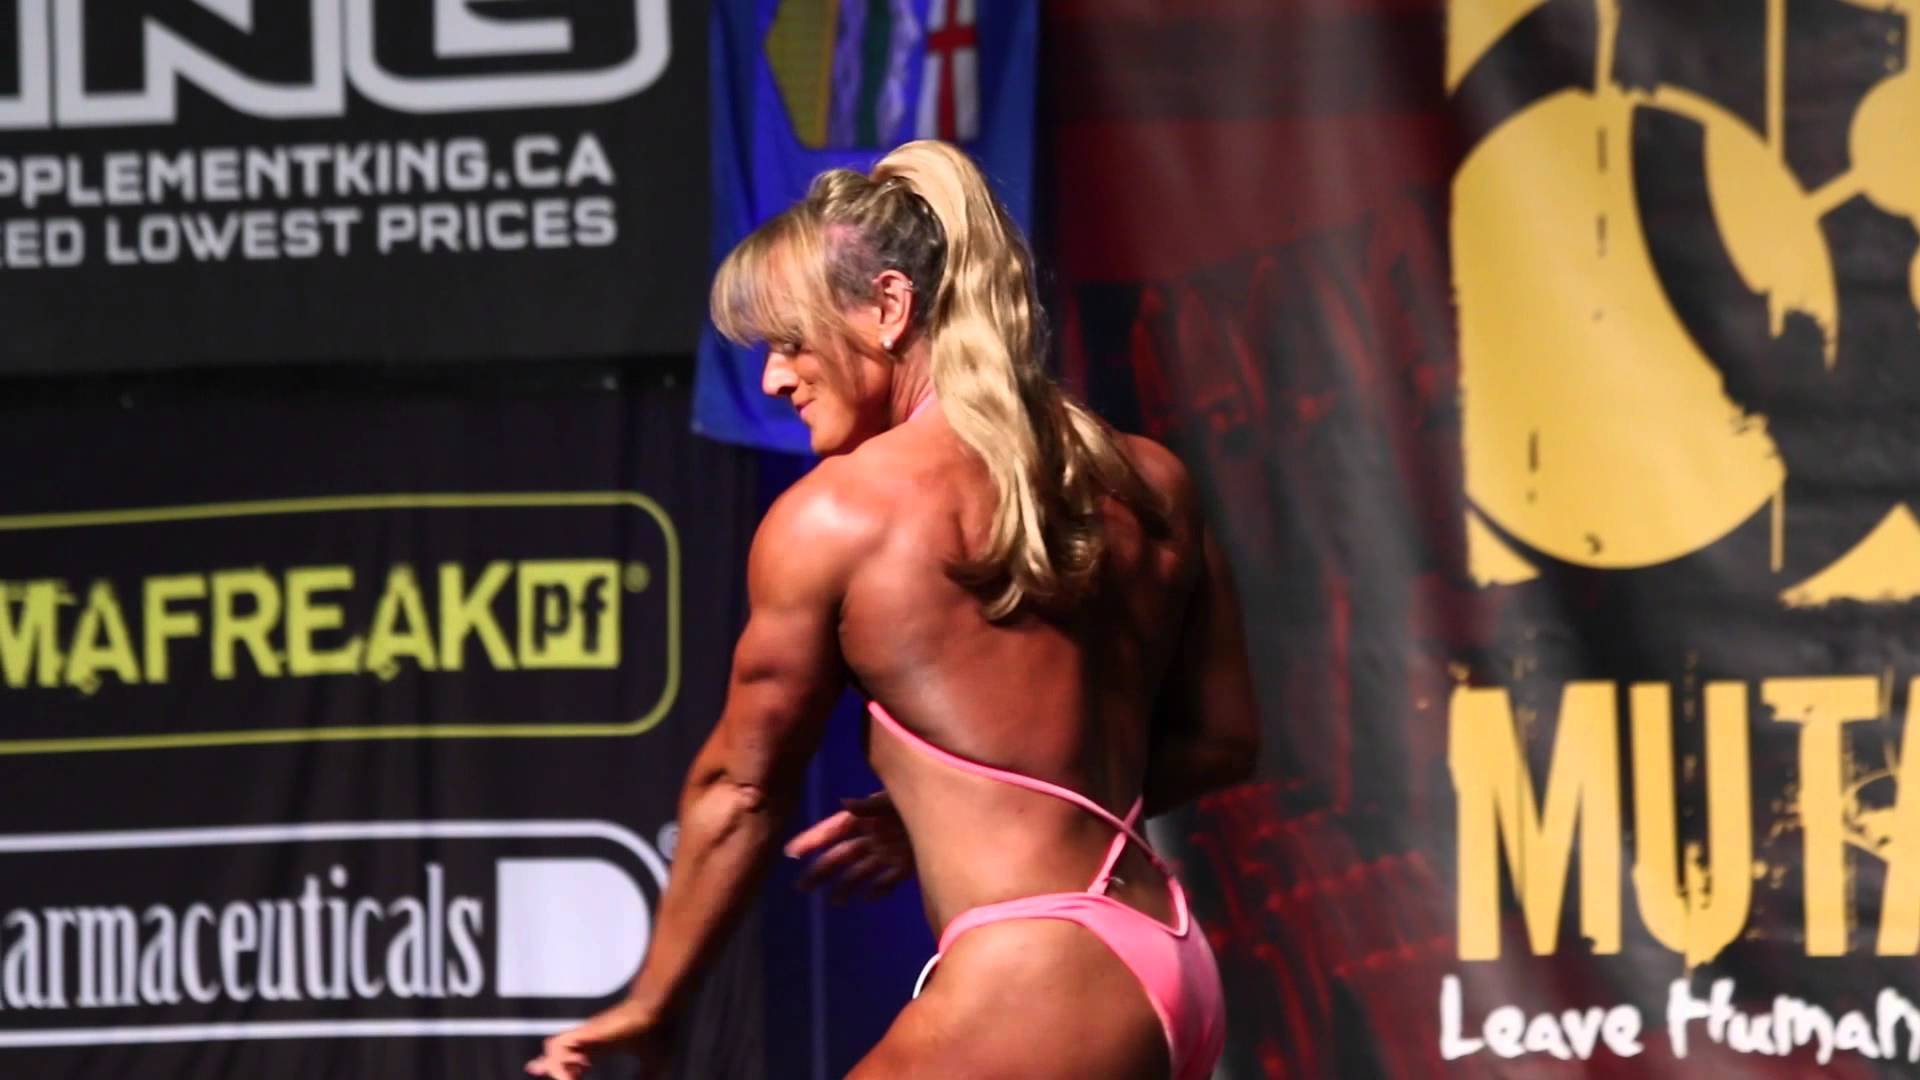 Dana Linn Bailey – Workout & Posing